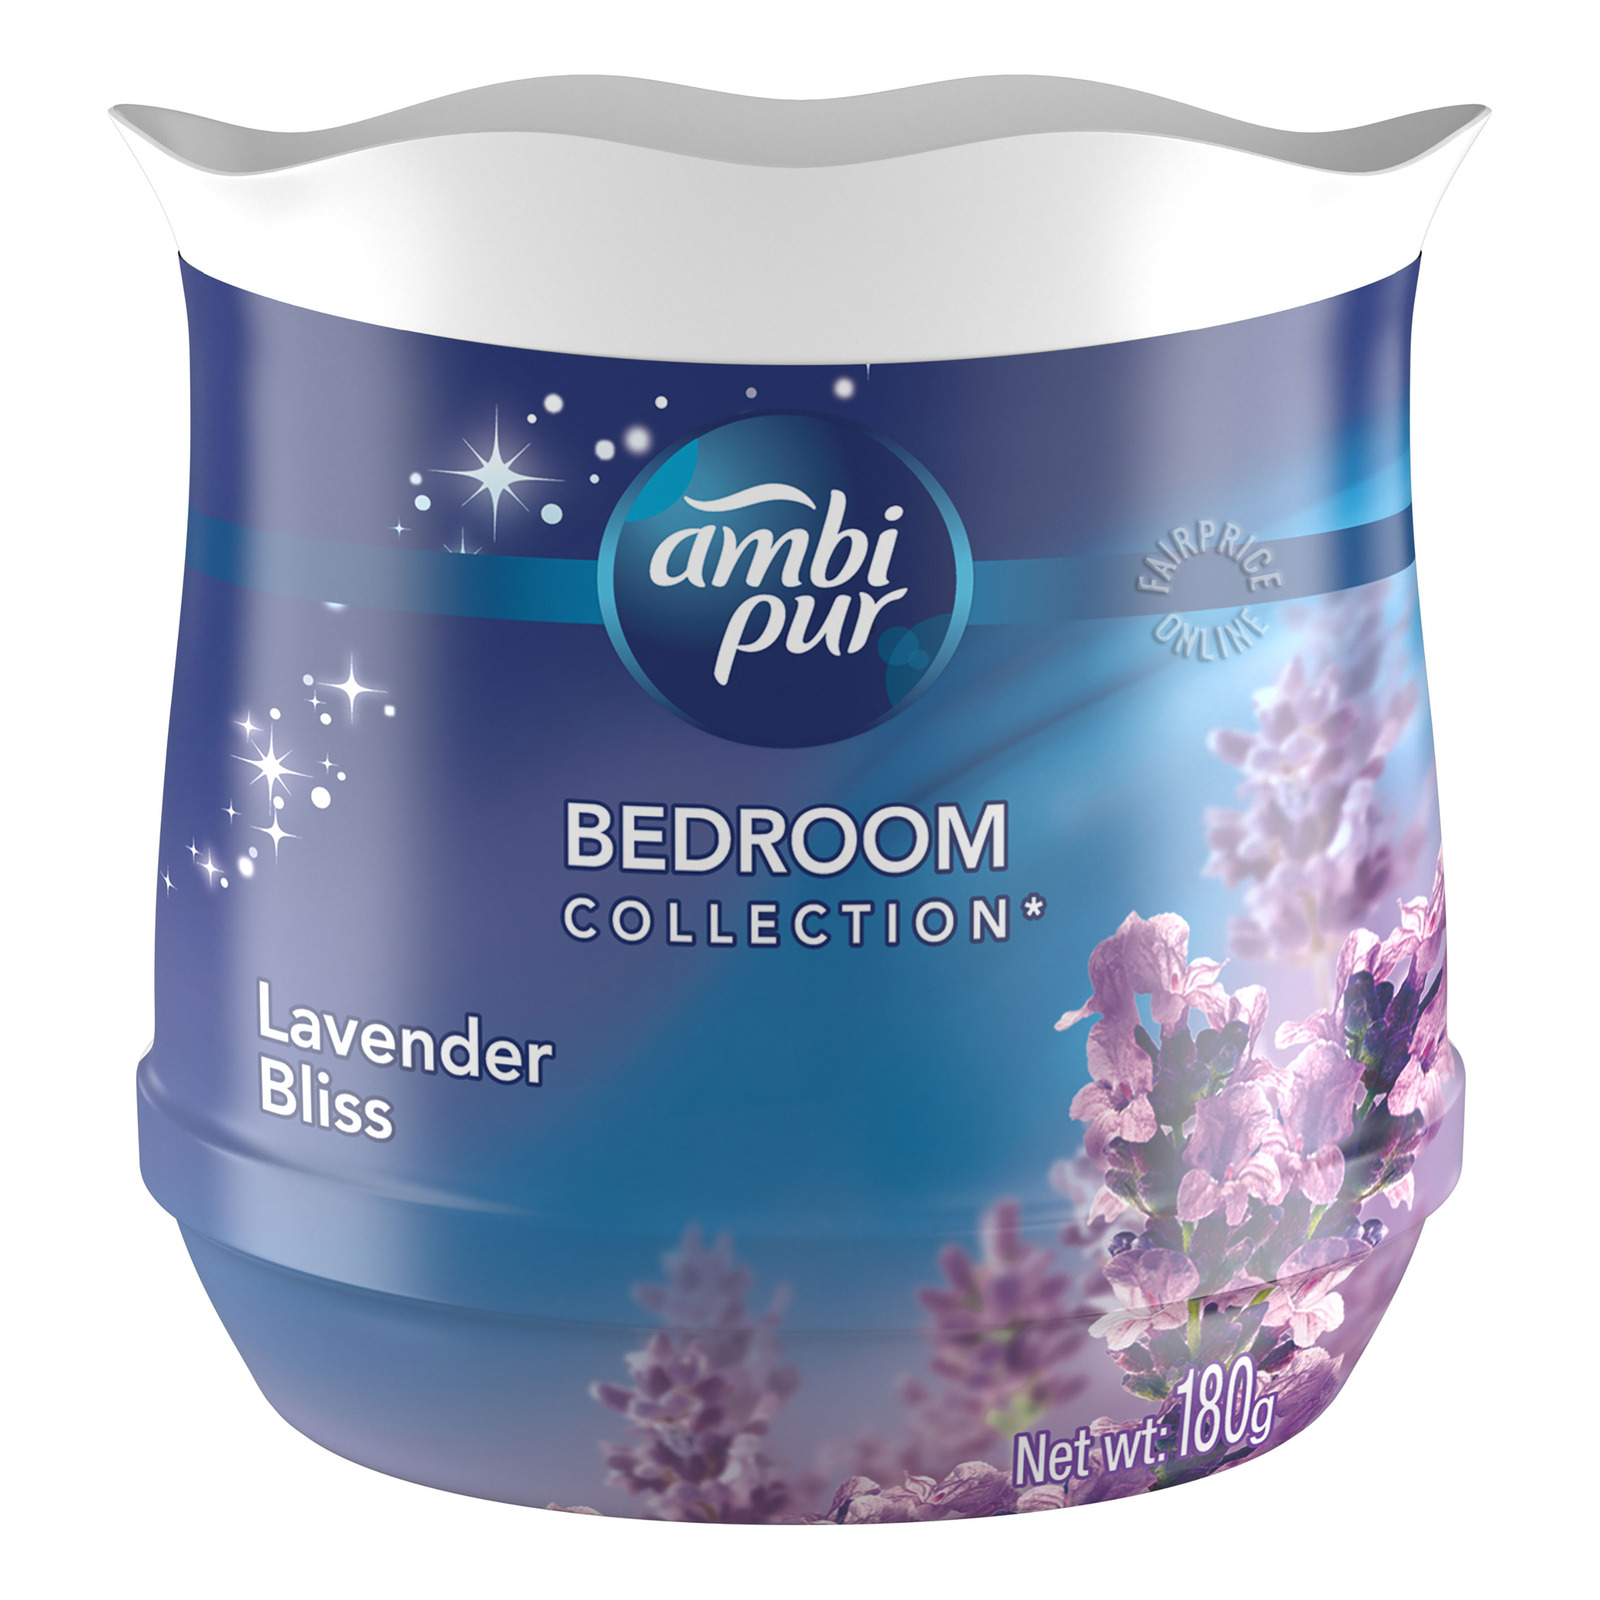 Ambi Pur Bedroom Collection Gel Fresh - Lavender Bliss